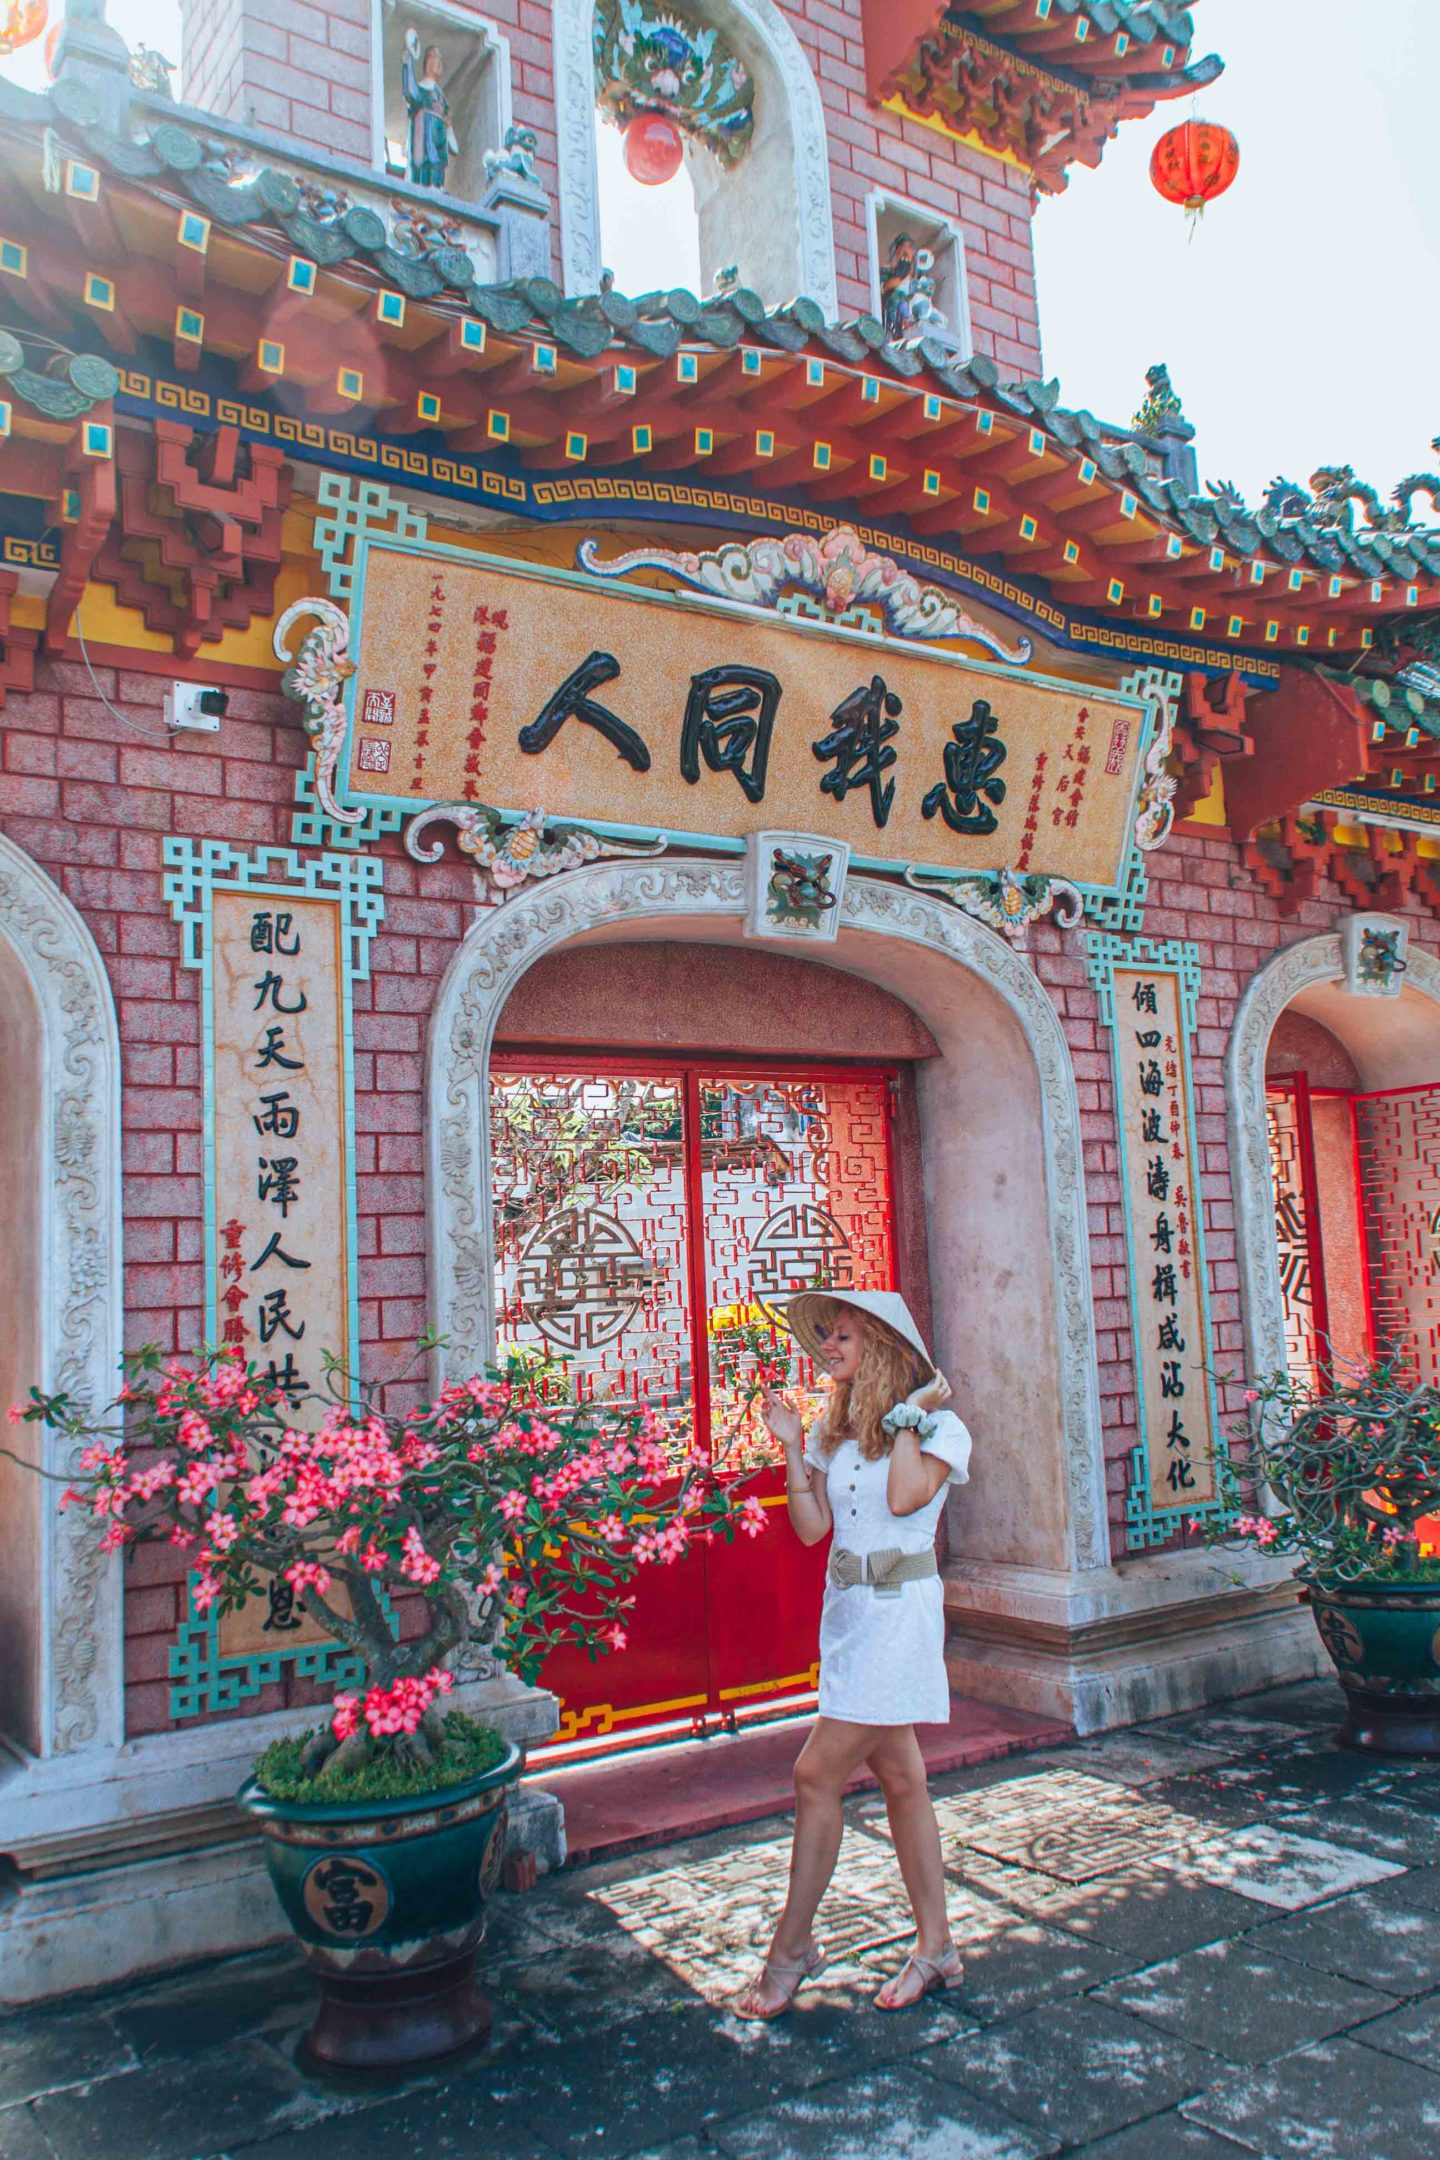 Flowers and architecture details in Fujian Chinese Assembly Hall, Hoi An, Vietnam